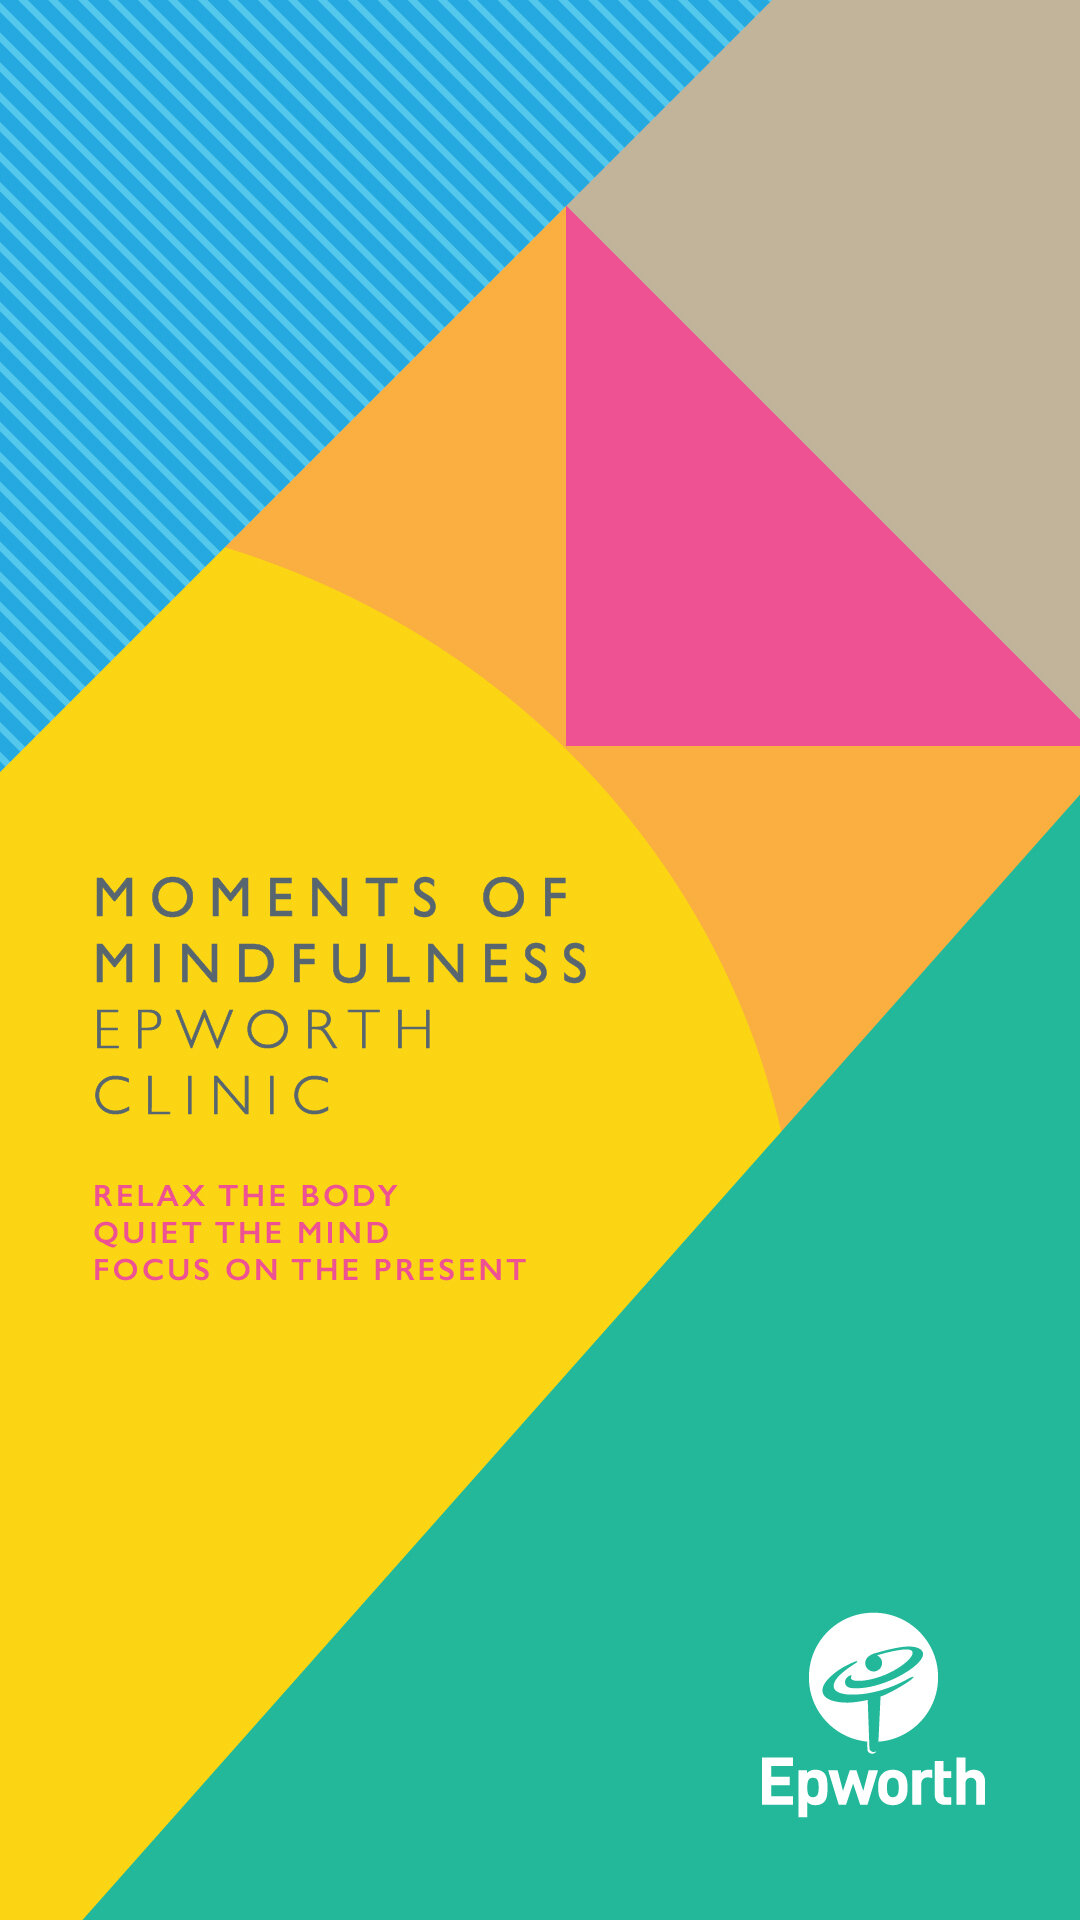 Moments of Mindfulness podcast